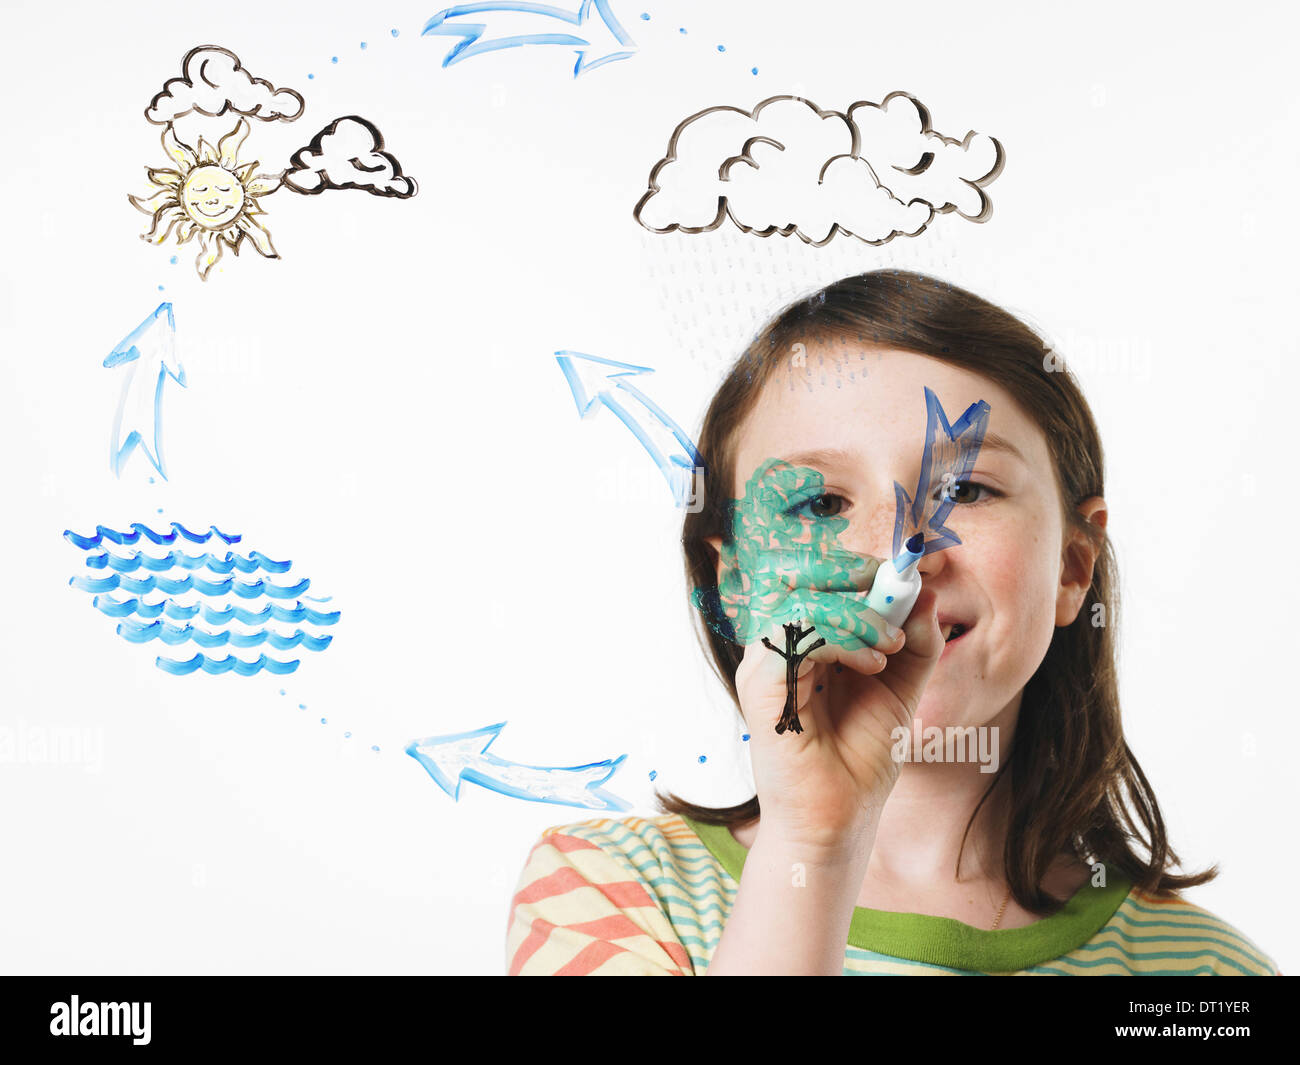 A young girl drawing the water evaporation cycle on a clear see through surface with a marker pen - Stock Image